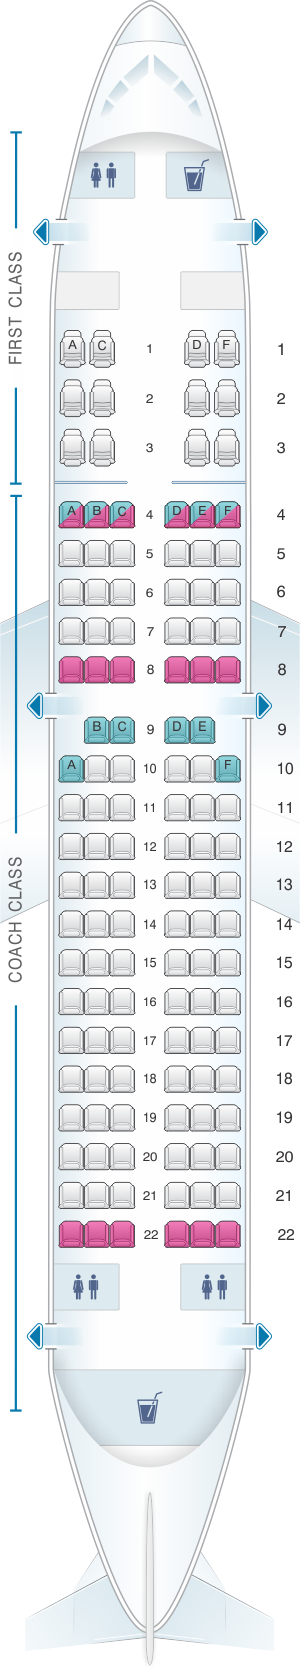 Seat map for US Airways Airbus A319